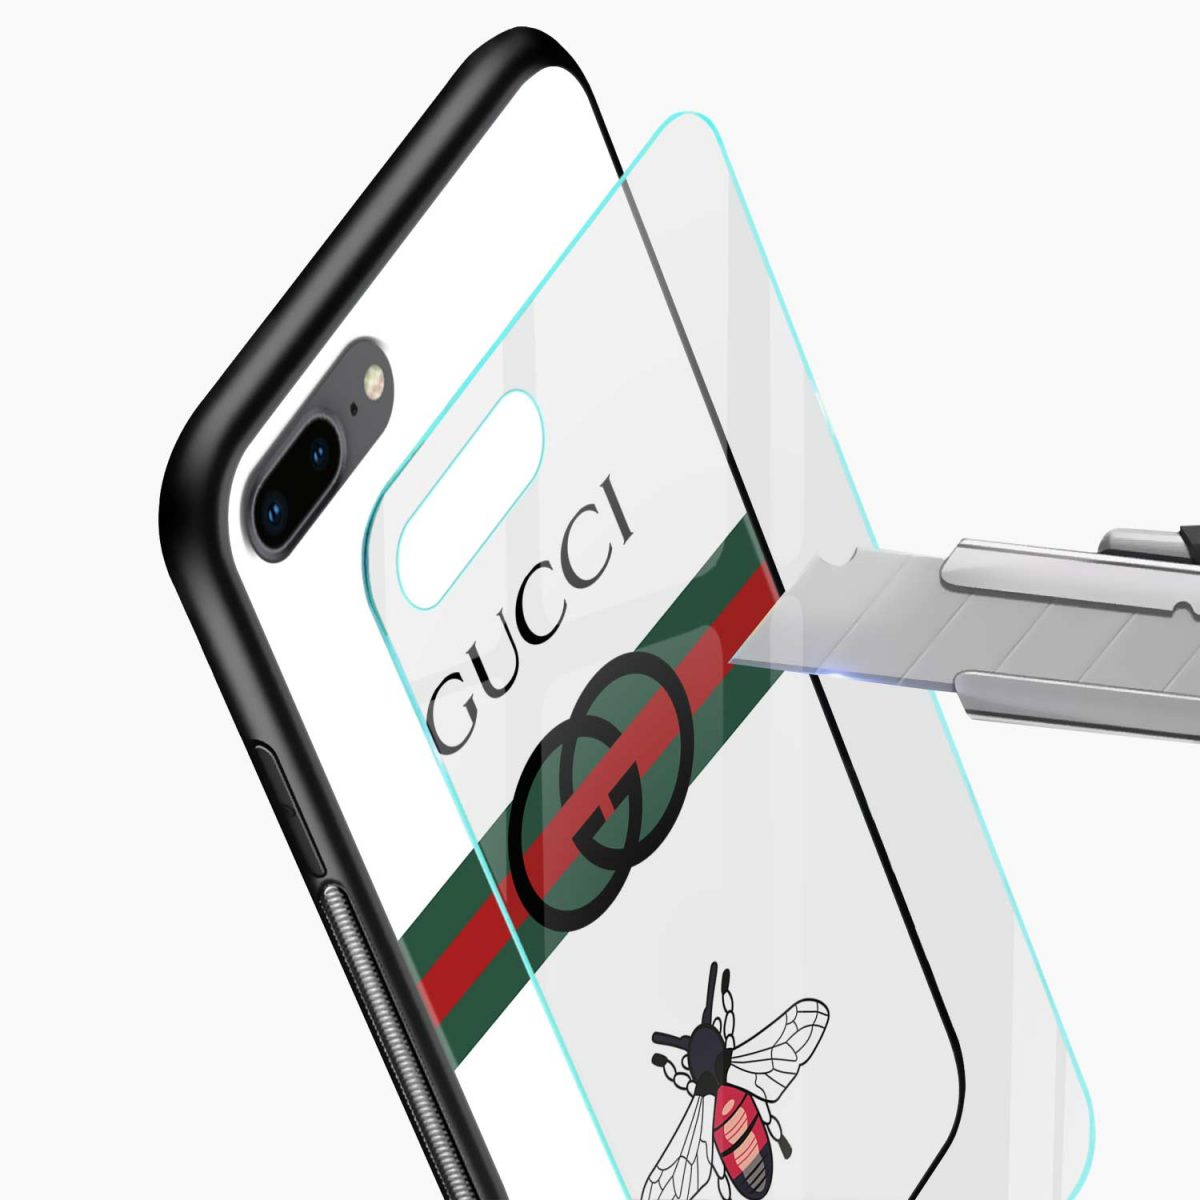 white gucci strips glass view apple iphone 7 8 plus back cover